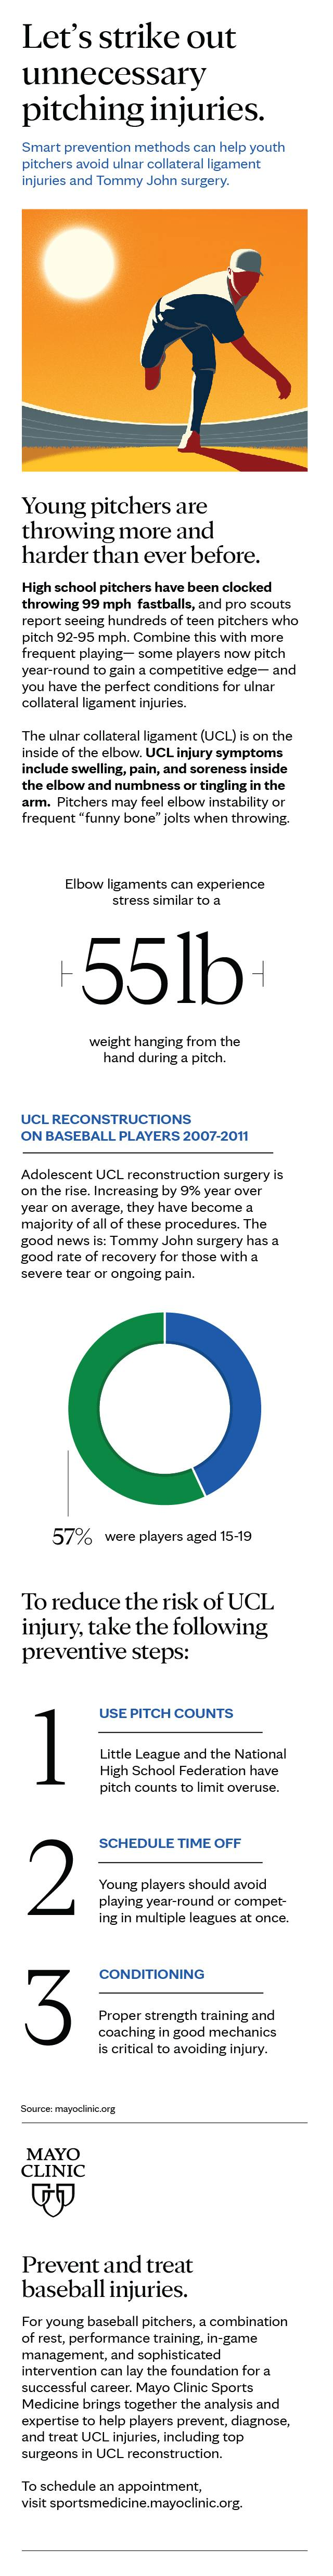 Infographic for Tommy John surgery